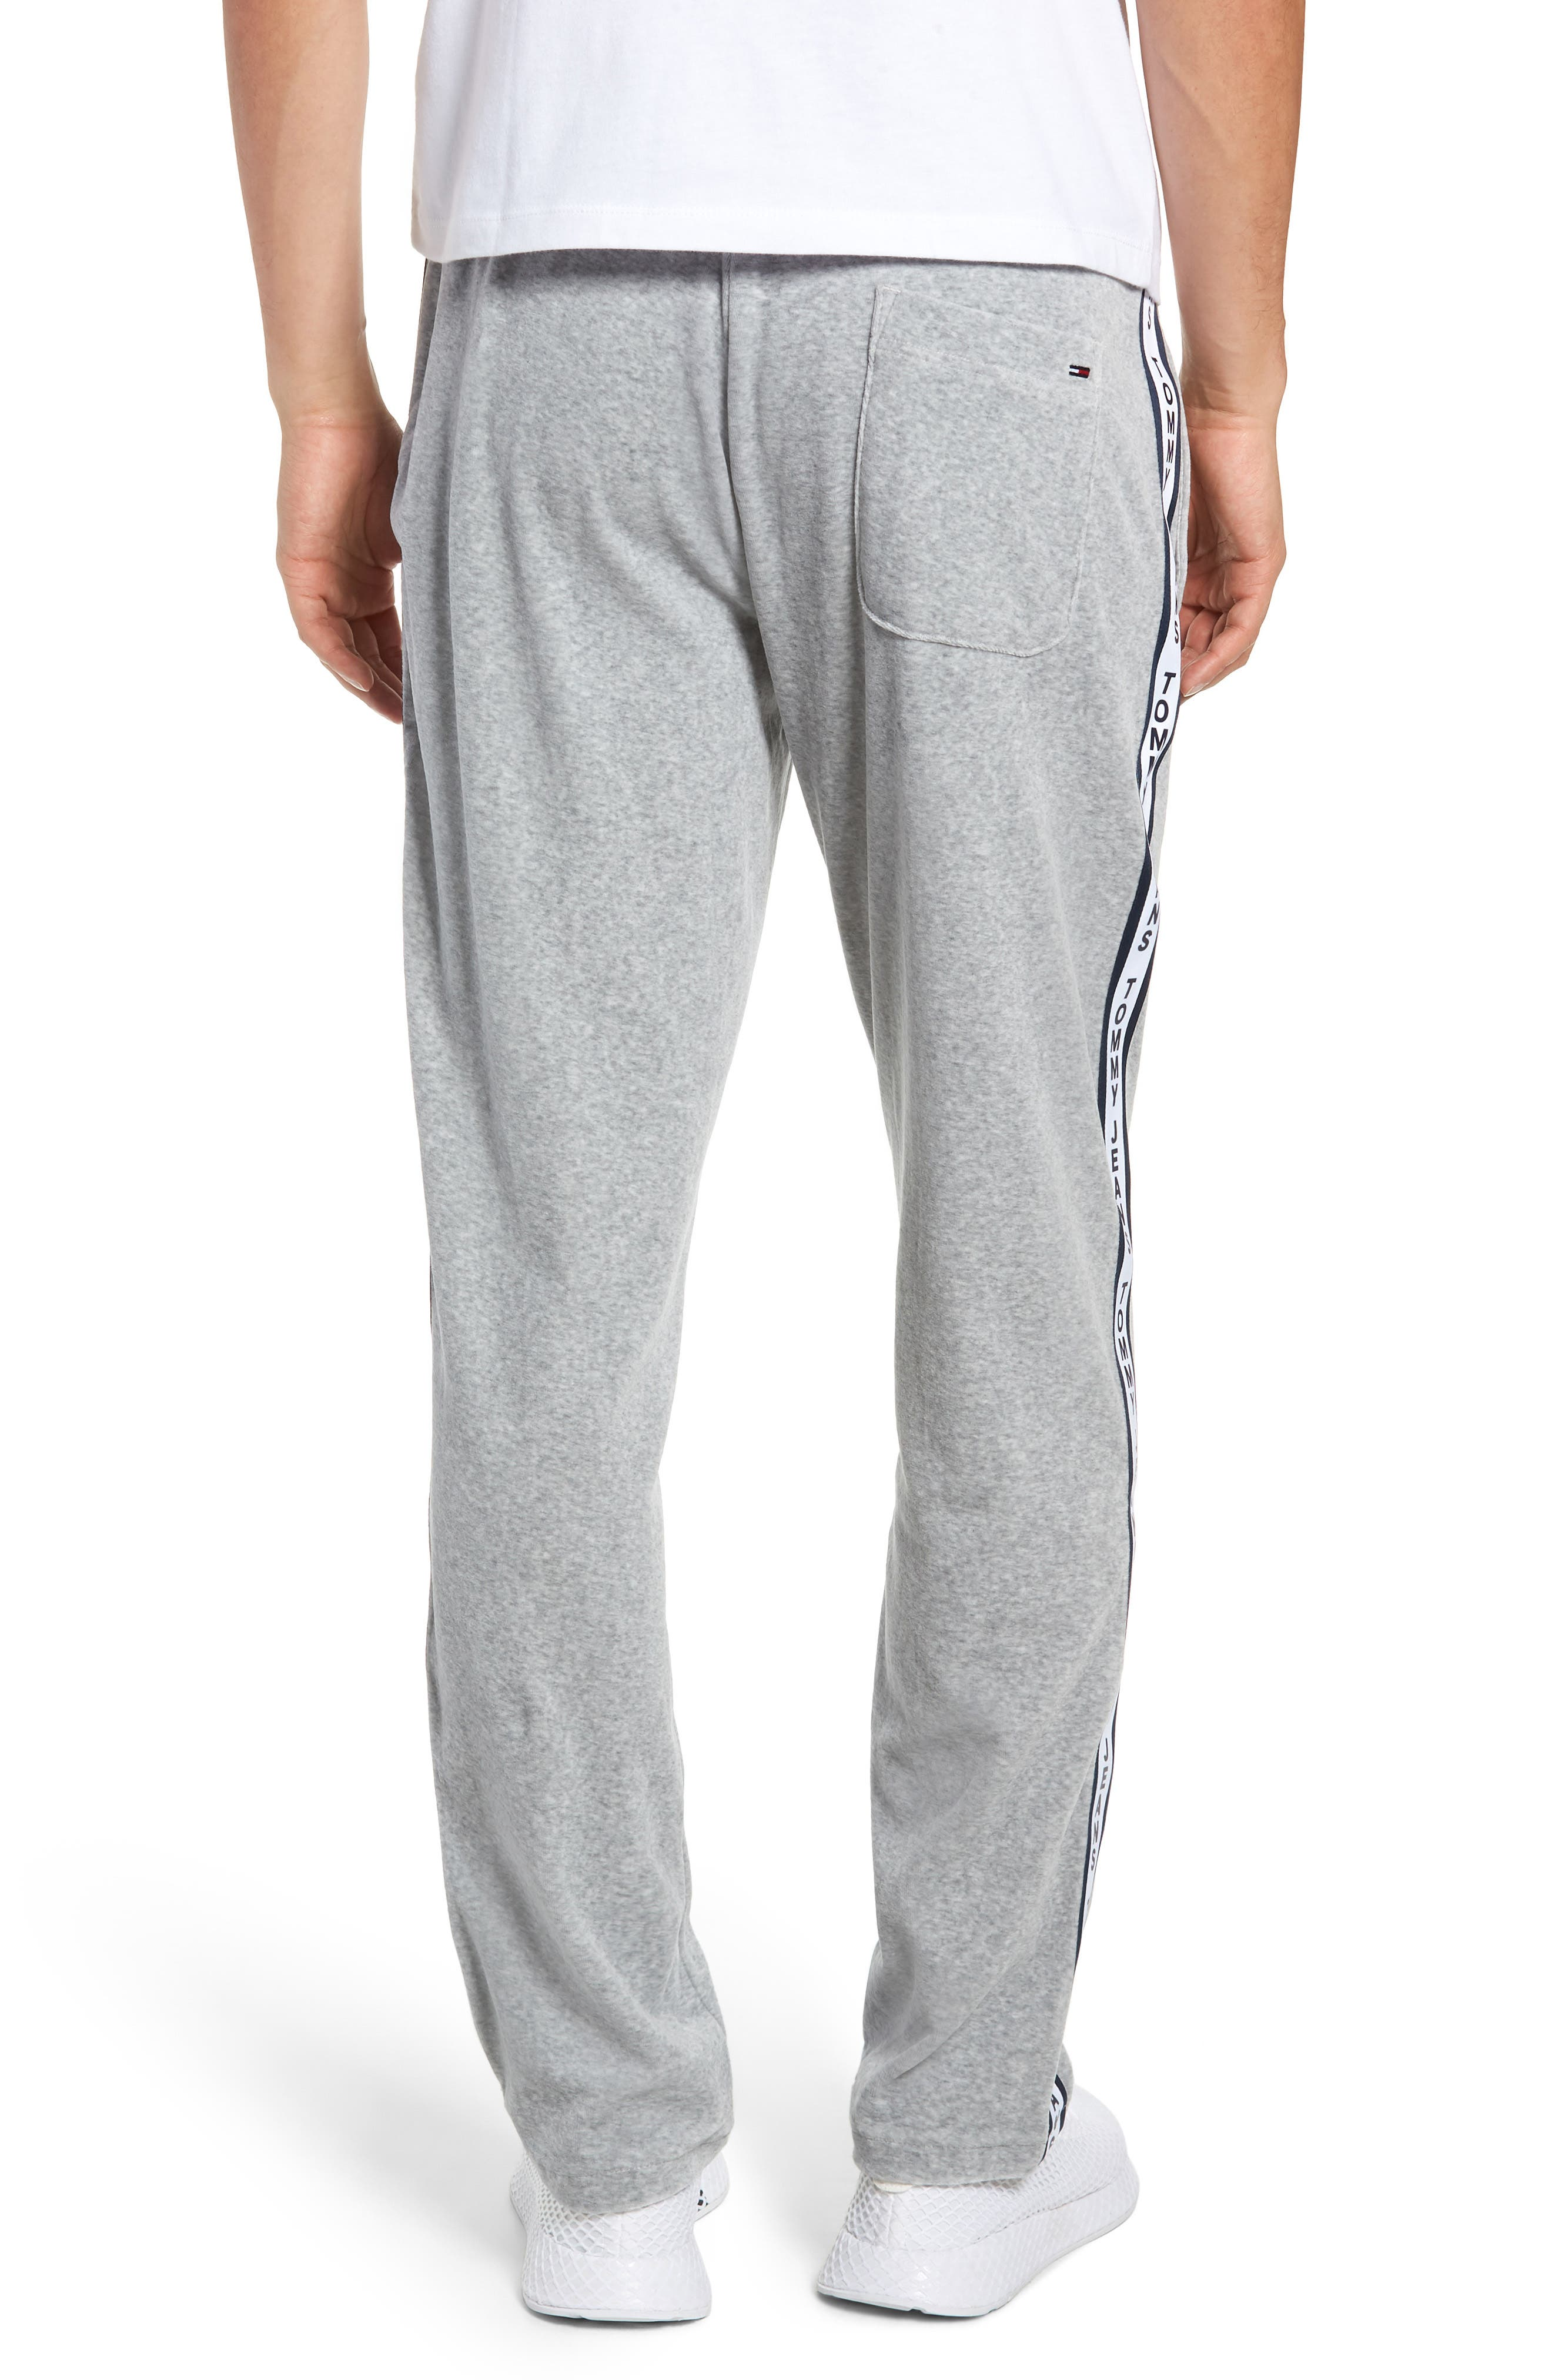 Relaxed Fit Velour Sweatpants,                             Alternate thumbnail 2, color,                             LIGHT GREY HEATHER